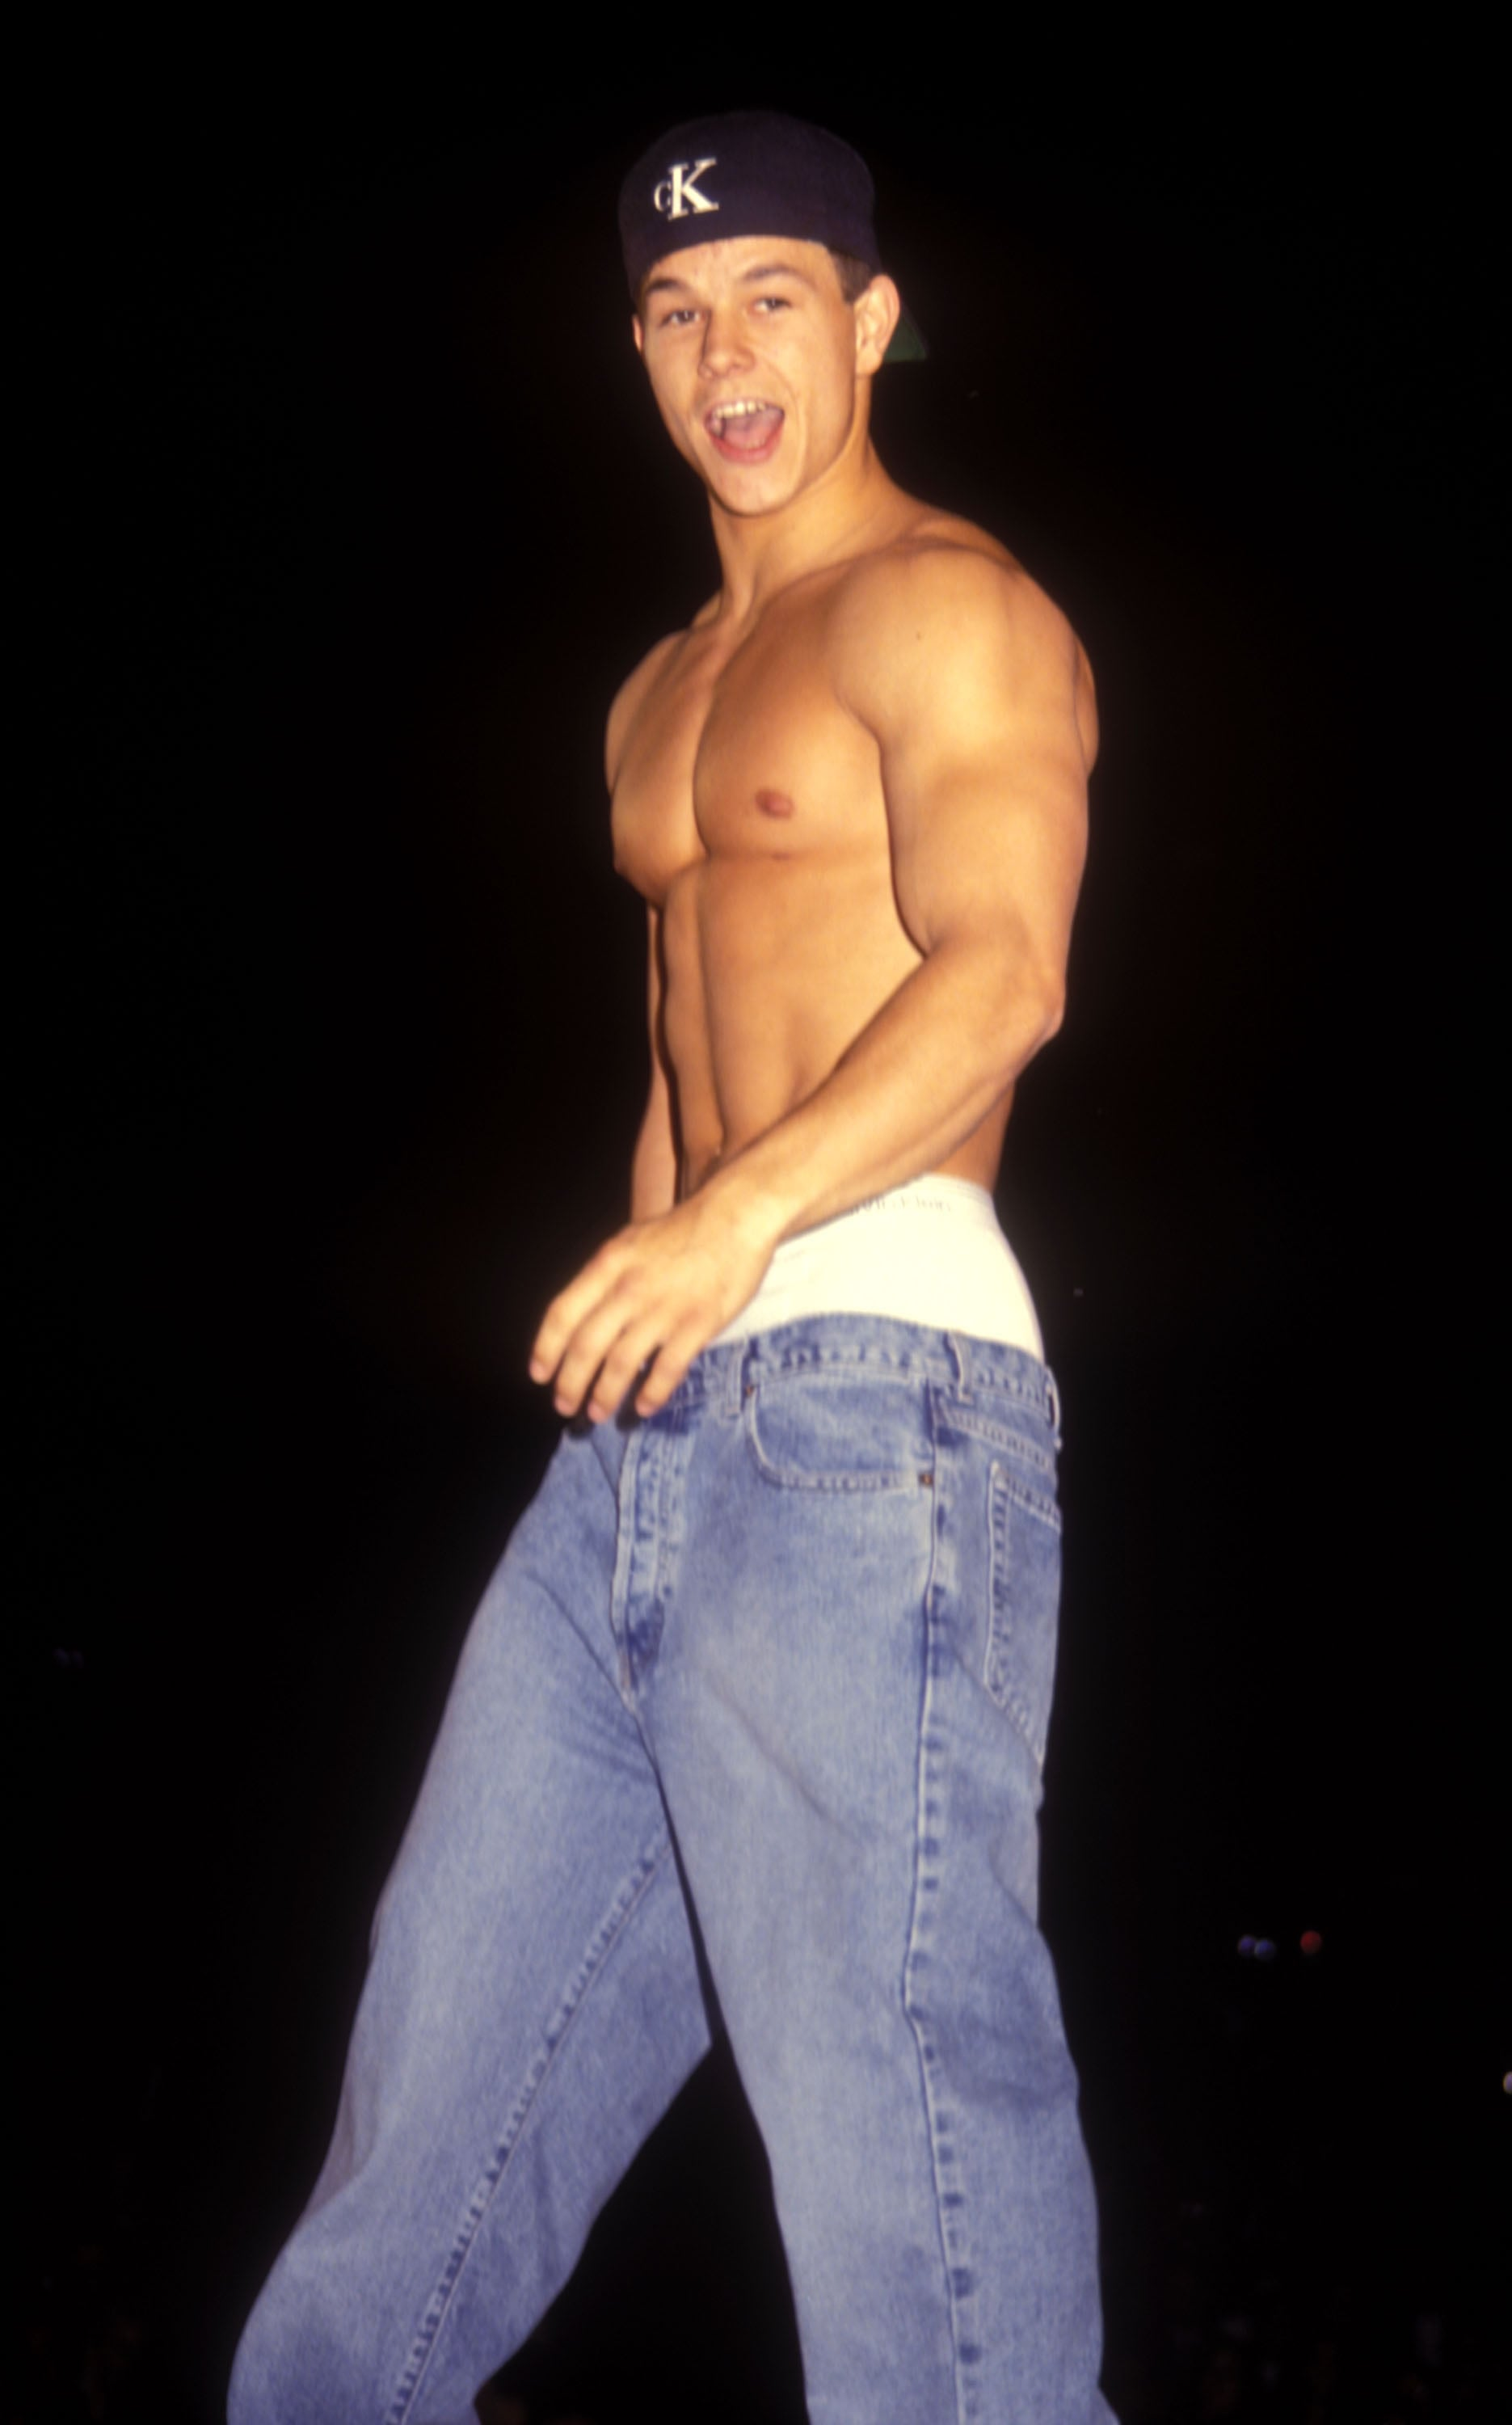 He even walked the runway for a Calvin Klein benefit show in 1995. Would you believe us if we told you he dropped his pants?